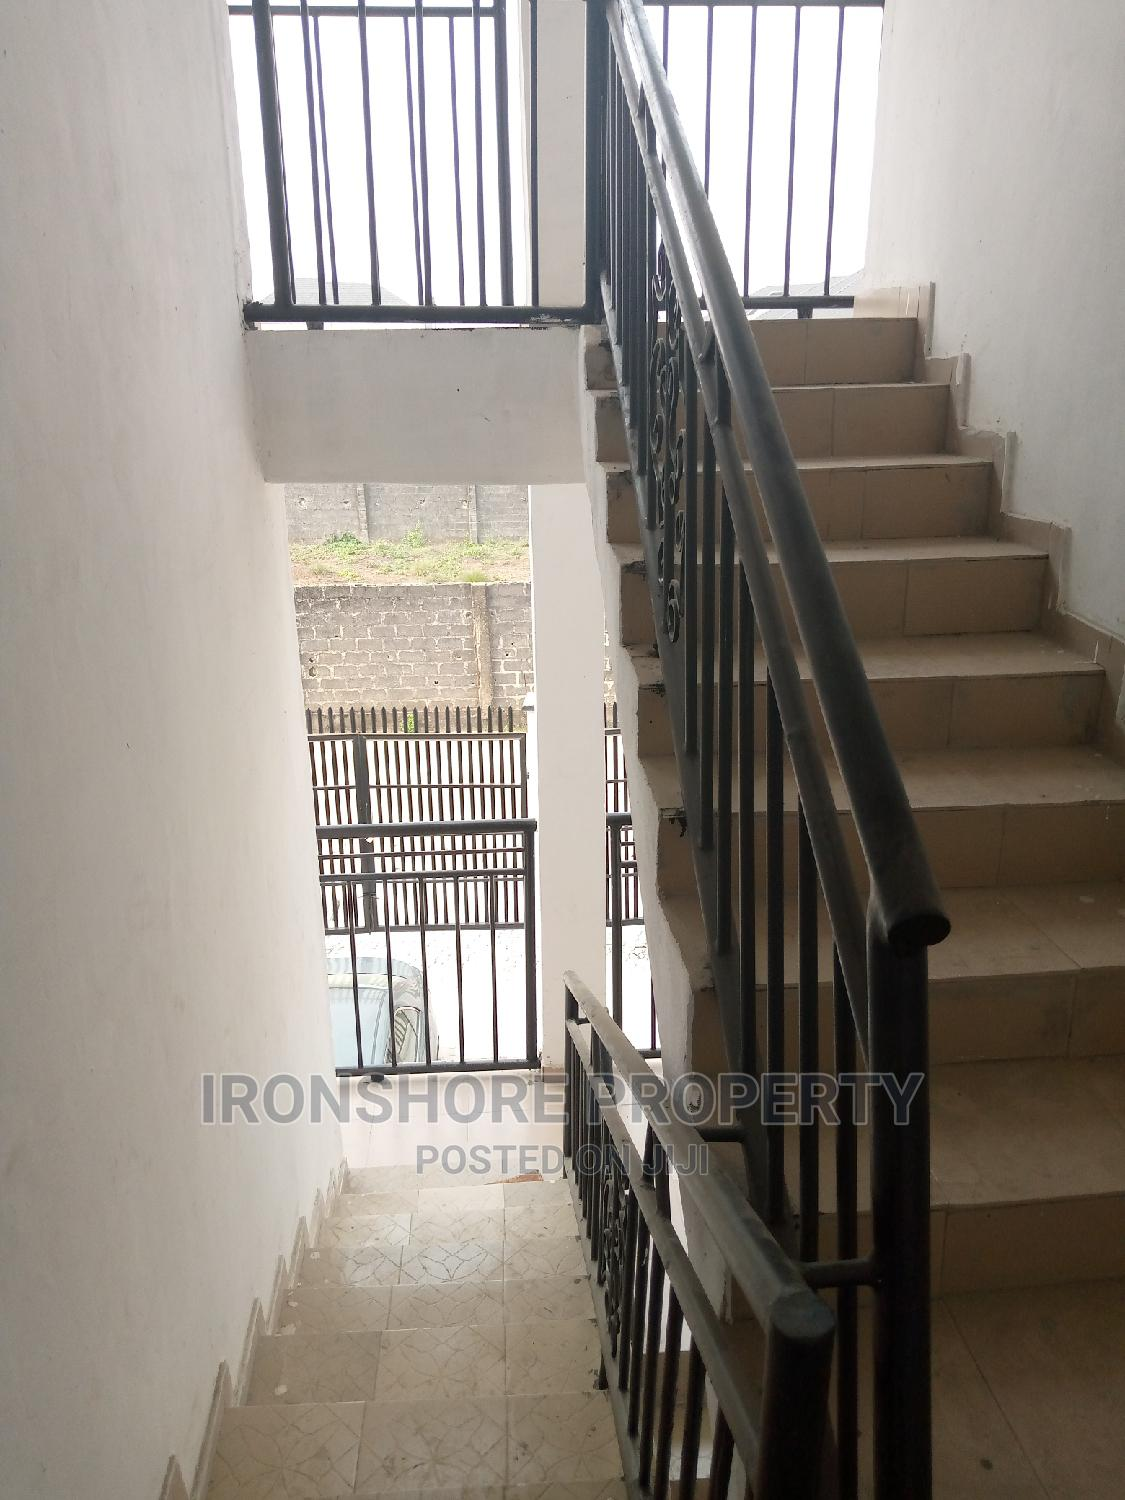 Executive Brand New 2 Bedroom Apartment for Rent | Houses & Apartments For Rent for sale in Lakowe, Ibeju, Nigeria